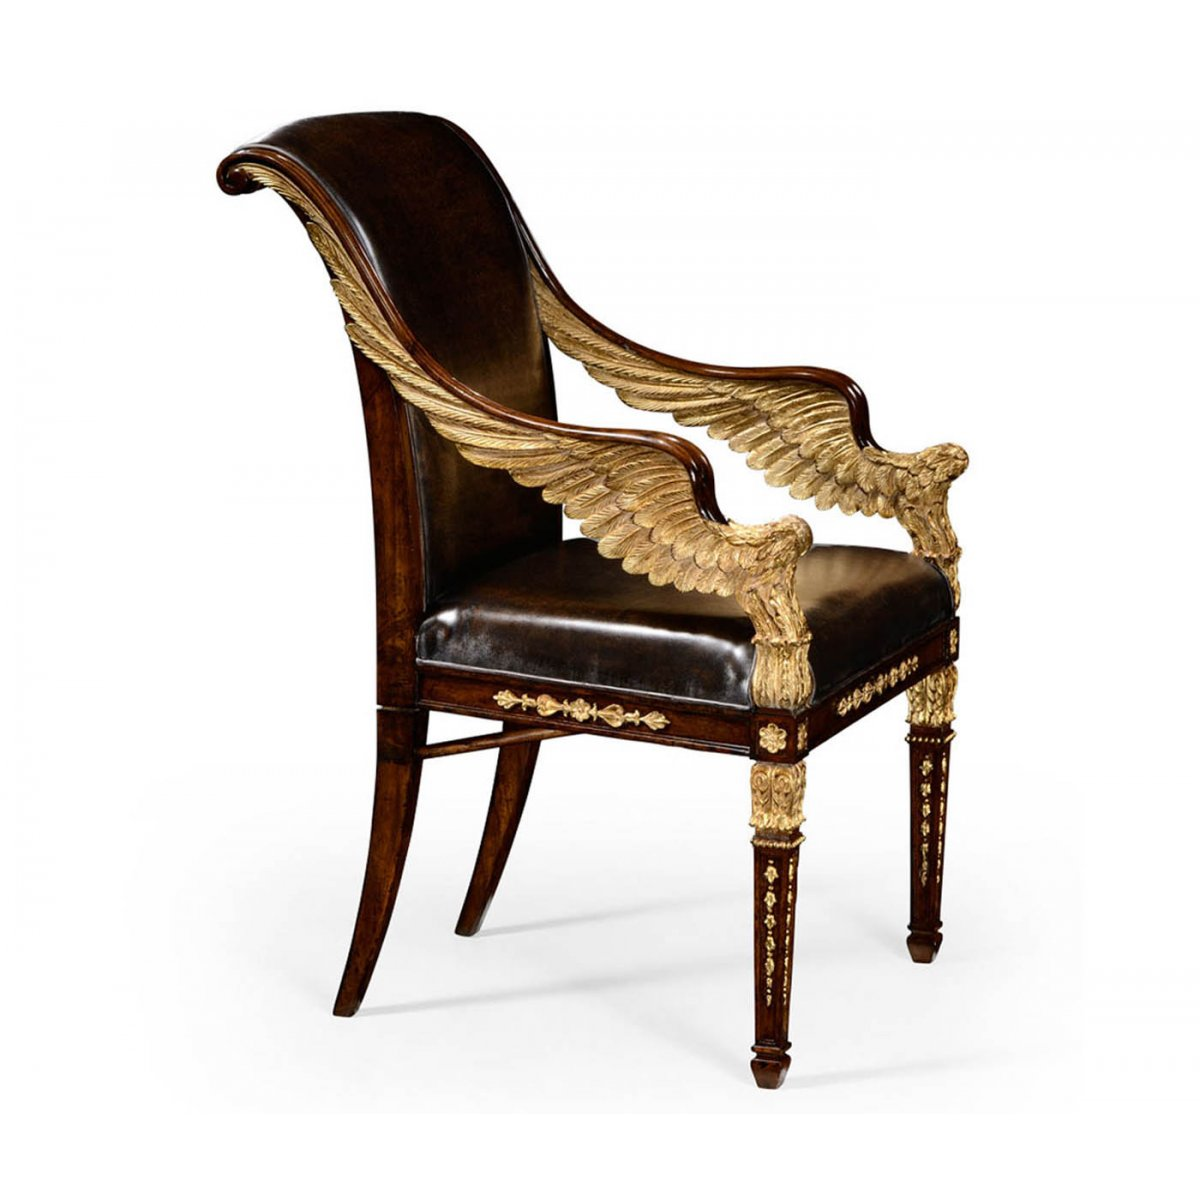 chair designer charles dining seat covers spotlight gilded leather armchair swanky interiors